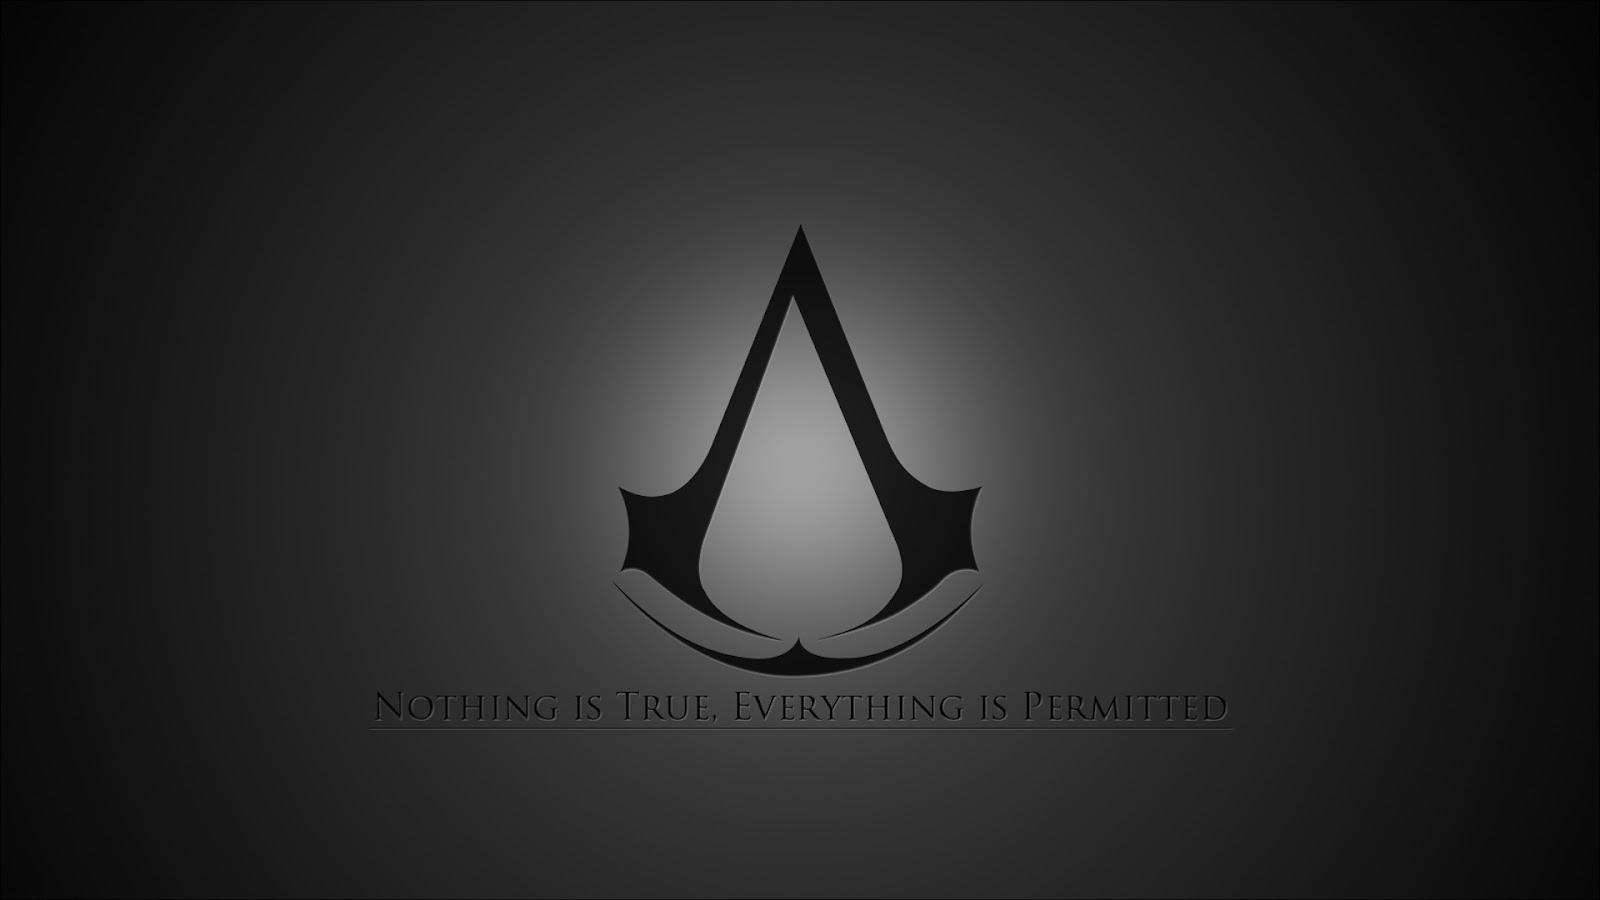 http://1.bp.blogspot.com/-tZRCQE_y9S0/UA1kA-1qjOI/AAAAAAAAAqw/XjcIpRots-c/s1600/Assassins%2520Creed%2520Brotherhood%2520PS3%2520wallpaper%25201920x1080.jpg